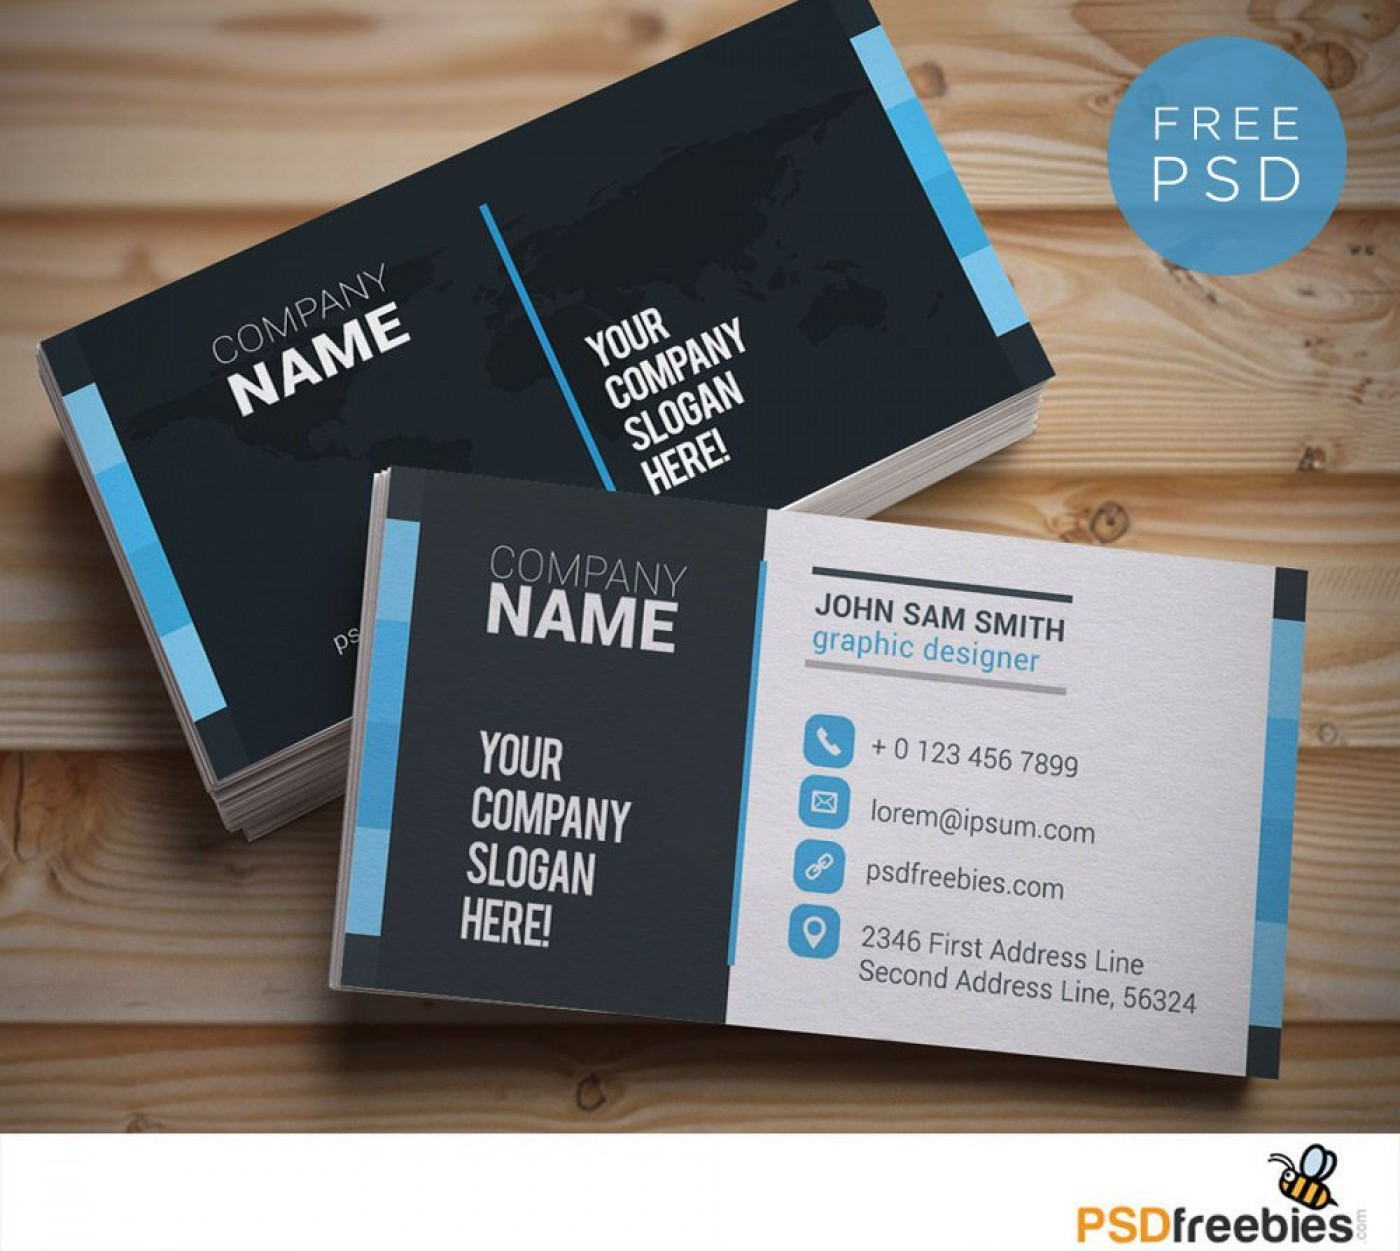 004 Stupendou Download Busines Card Template Highest Quality  Free For Illustrator Visiting Layout Word 20101400